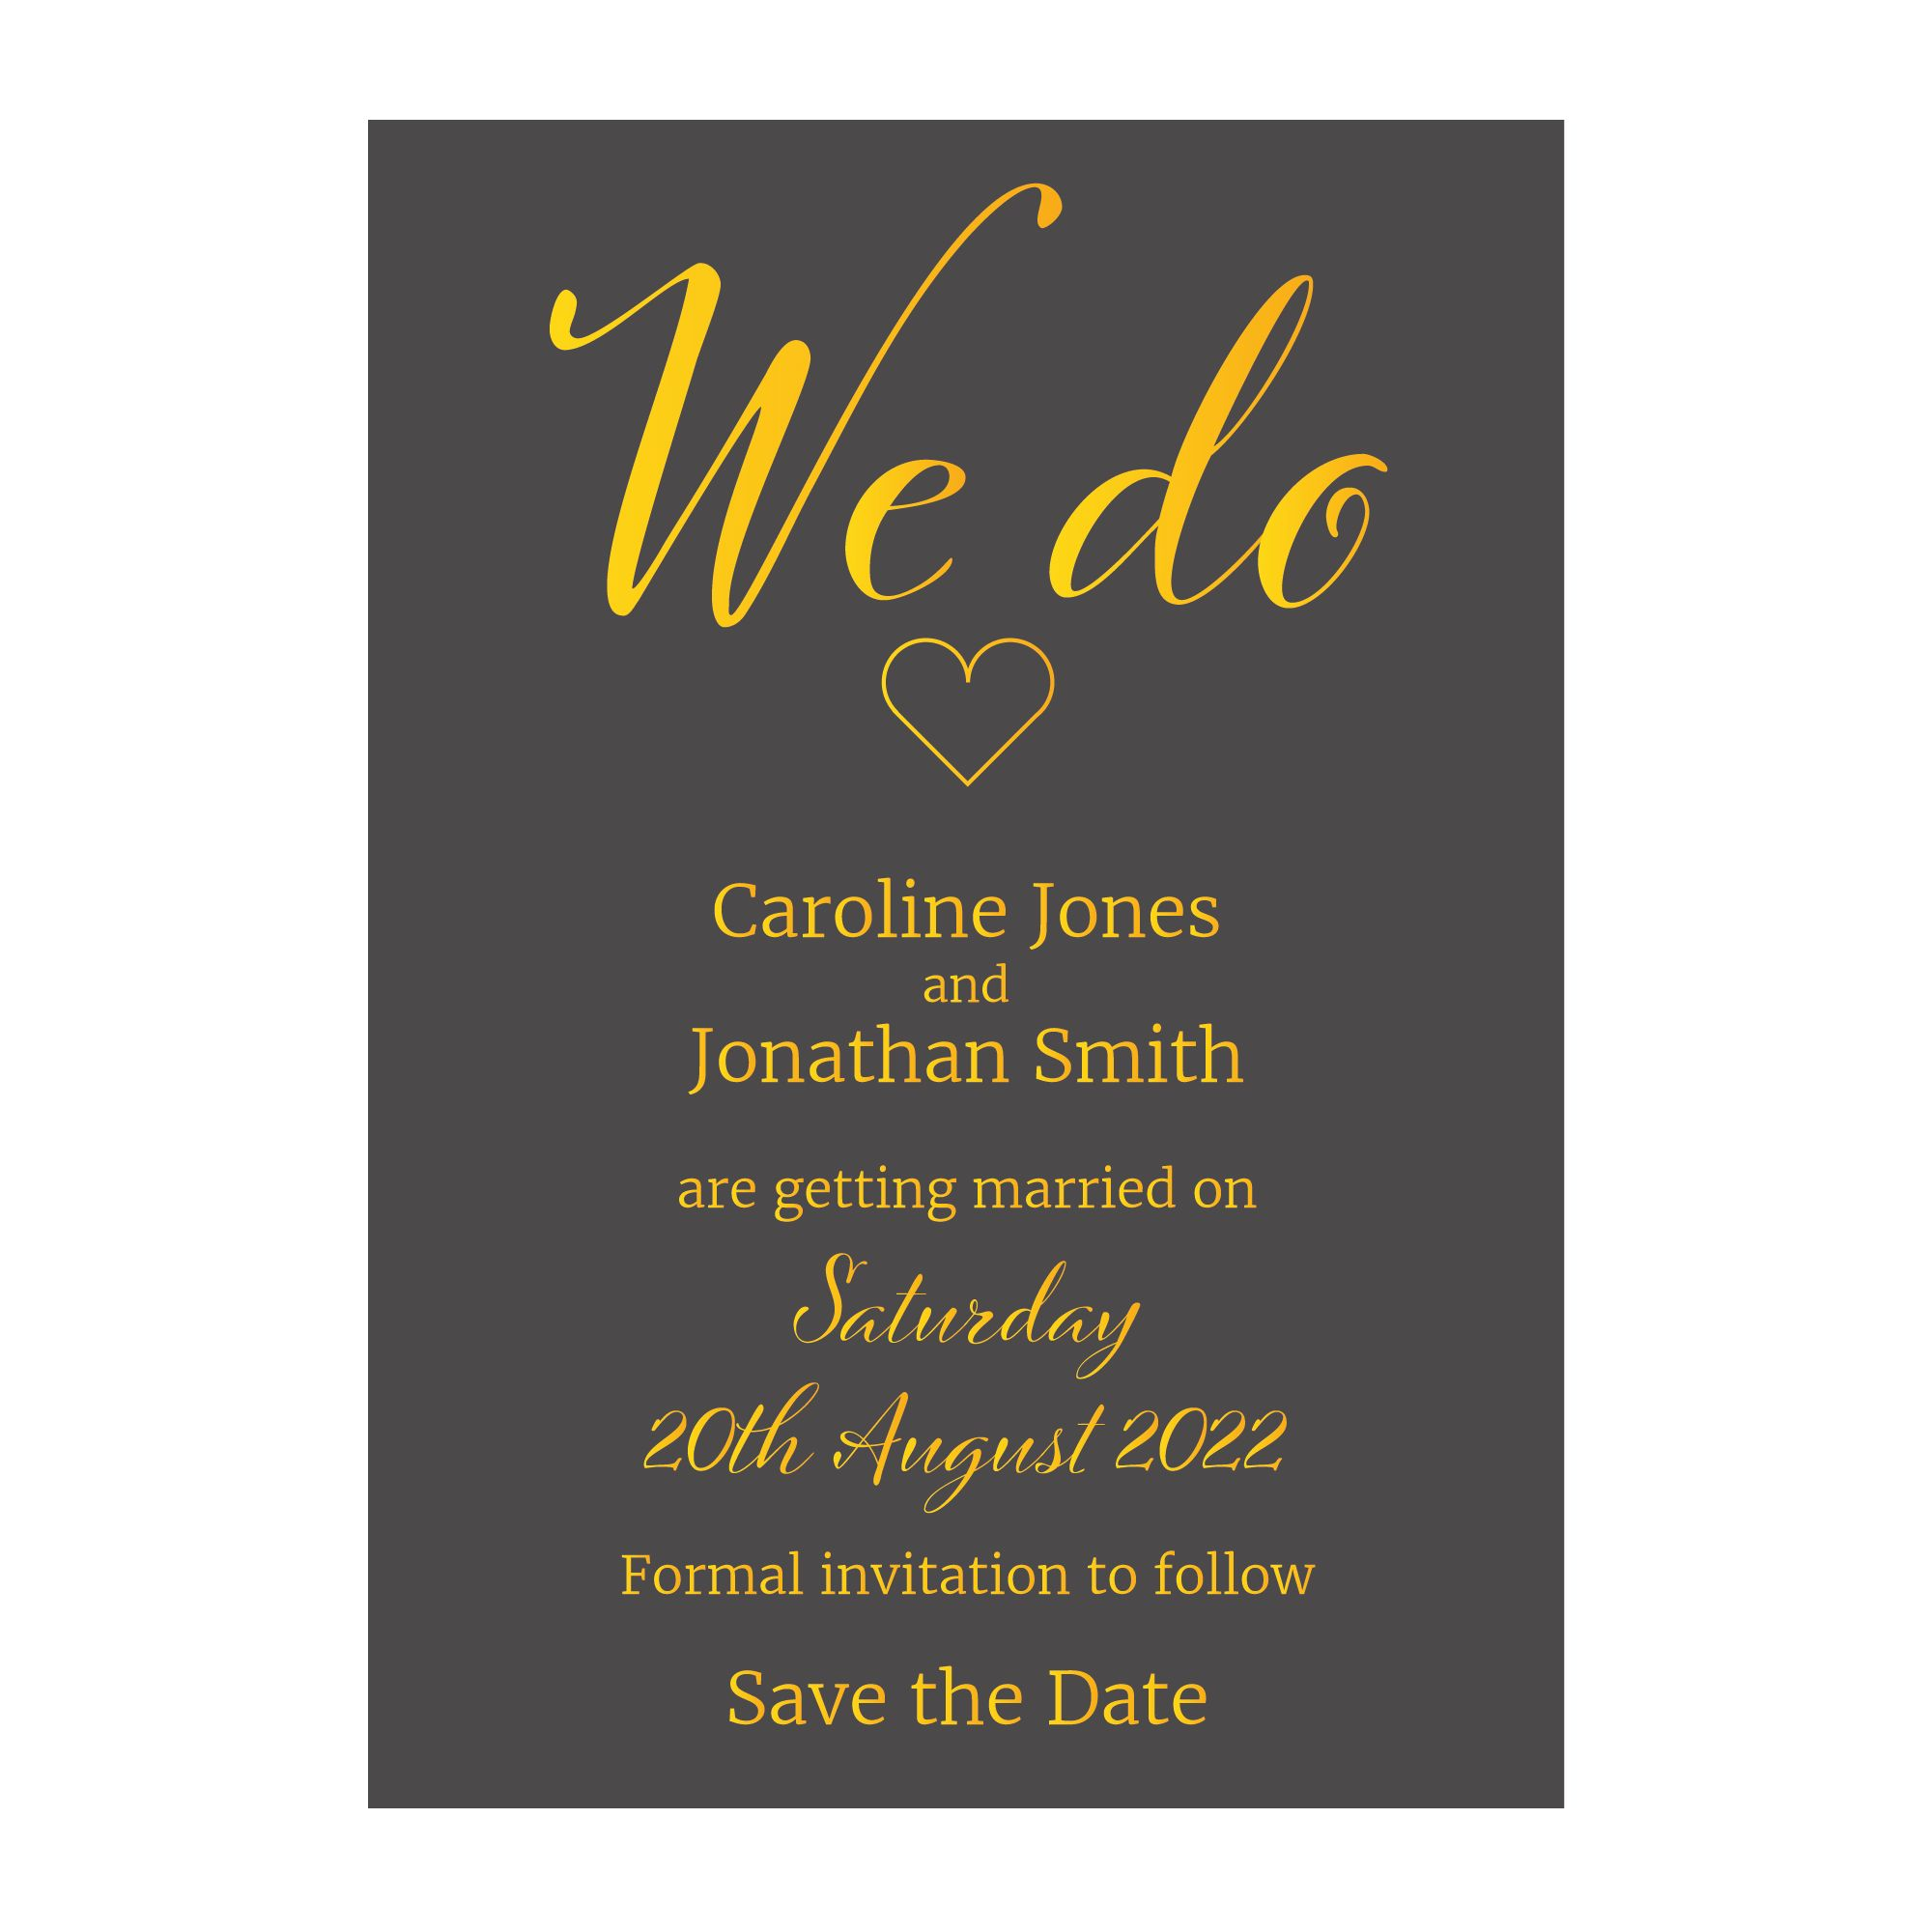 Grey with Gold Foil We Do Wedding Save the Date Cards